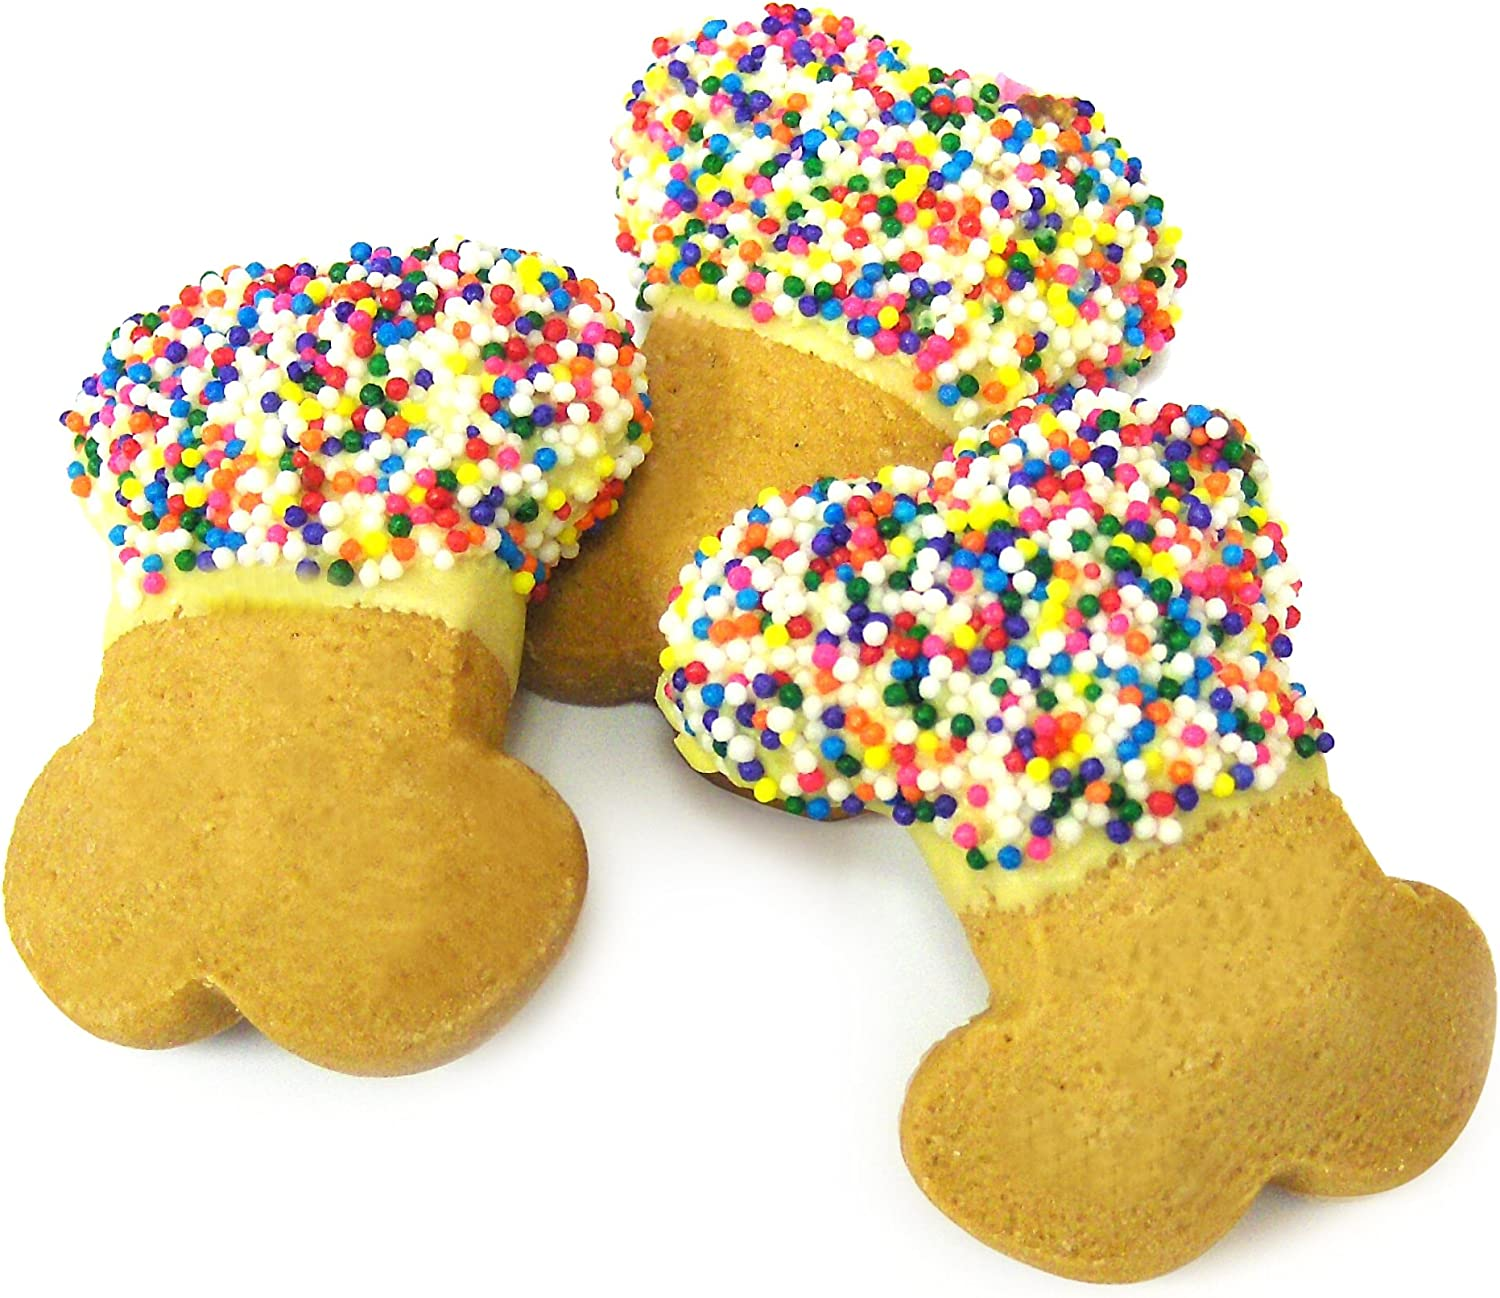 Claudias Canine Cuisine 24Piece Boutique Bakery Canine Party Bones Dog Cookies with Sprinkles